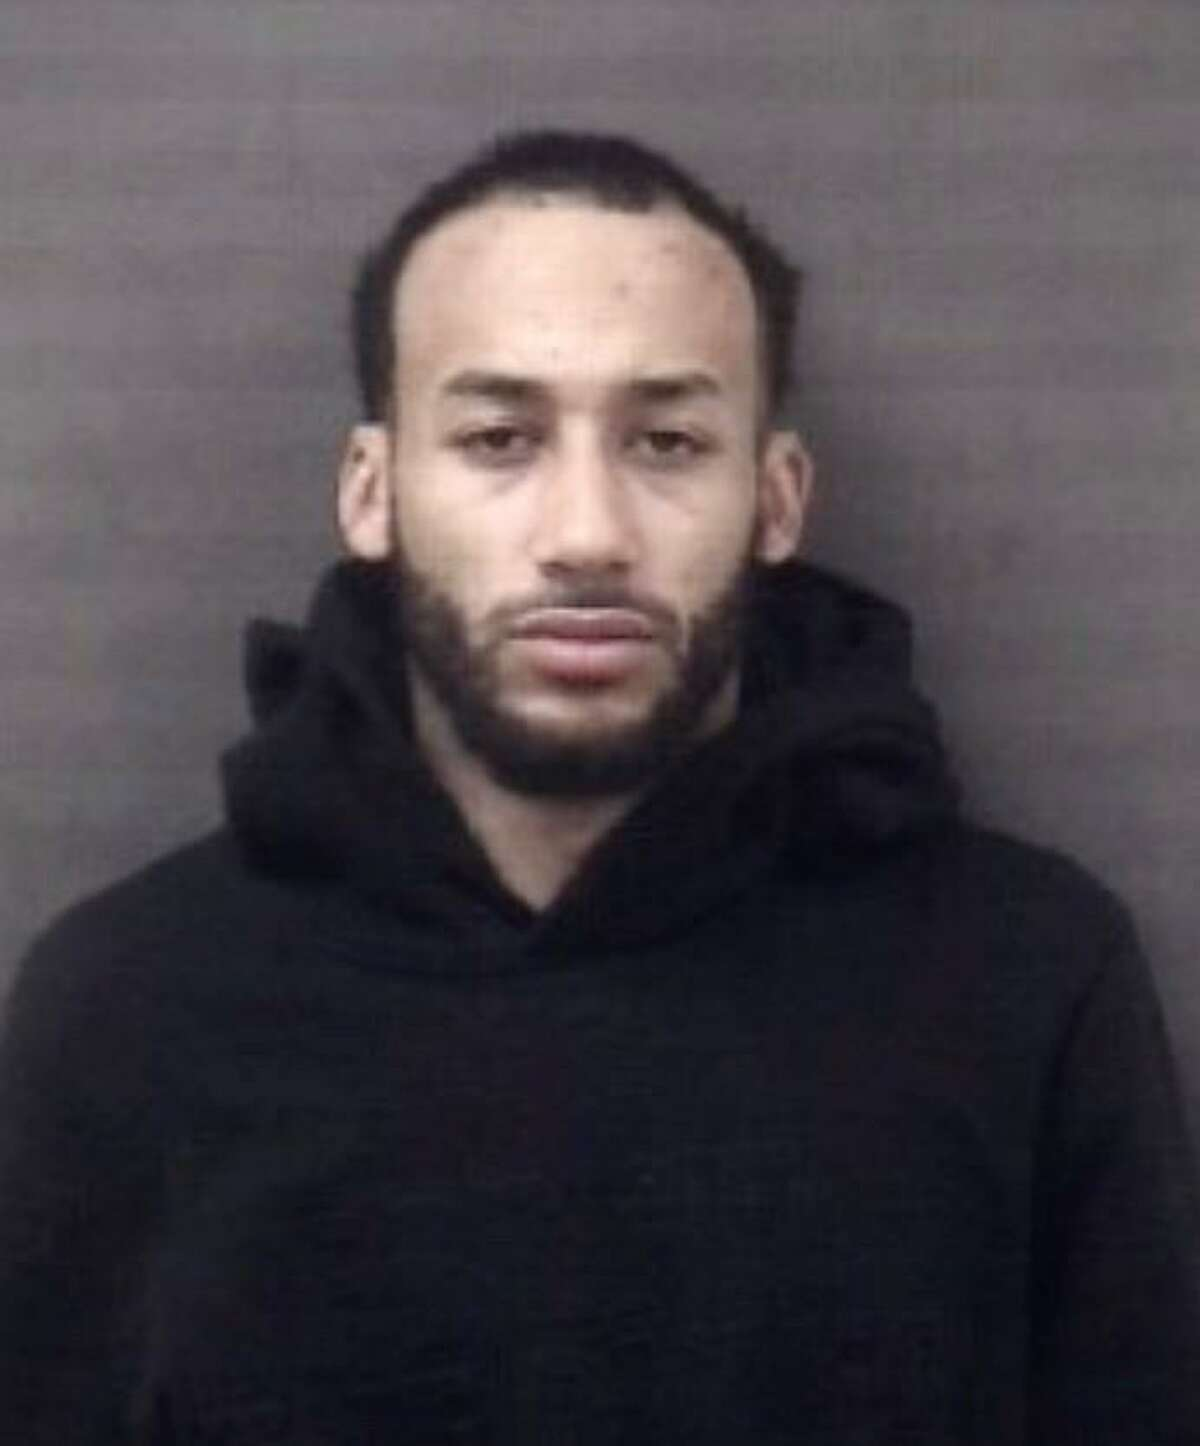 Christopher Dahlinger of Trumbull was arrested by Milford police Friday. He is a suspect in a Guilford and Amherst, Mass. burglaries.